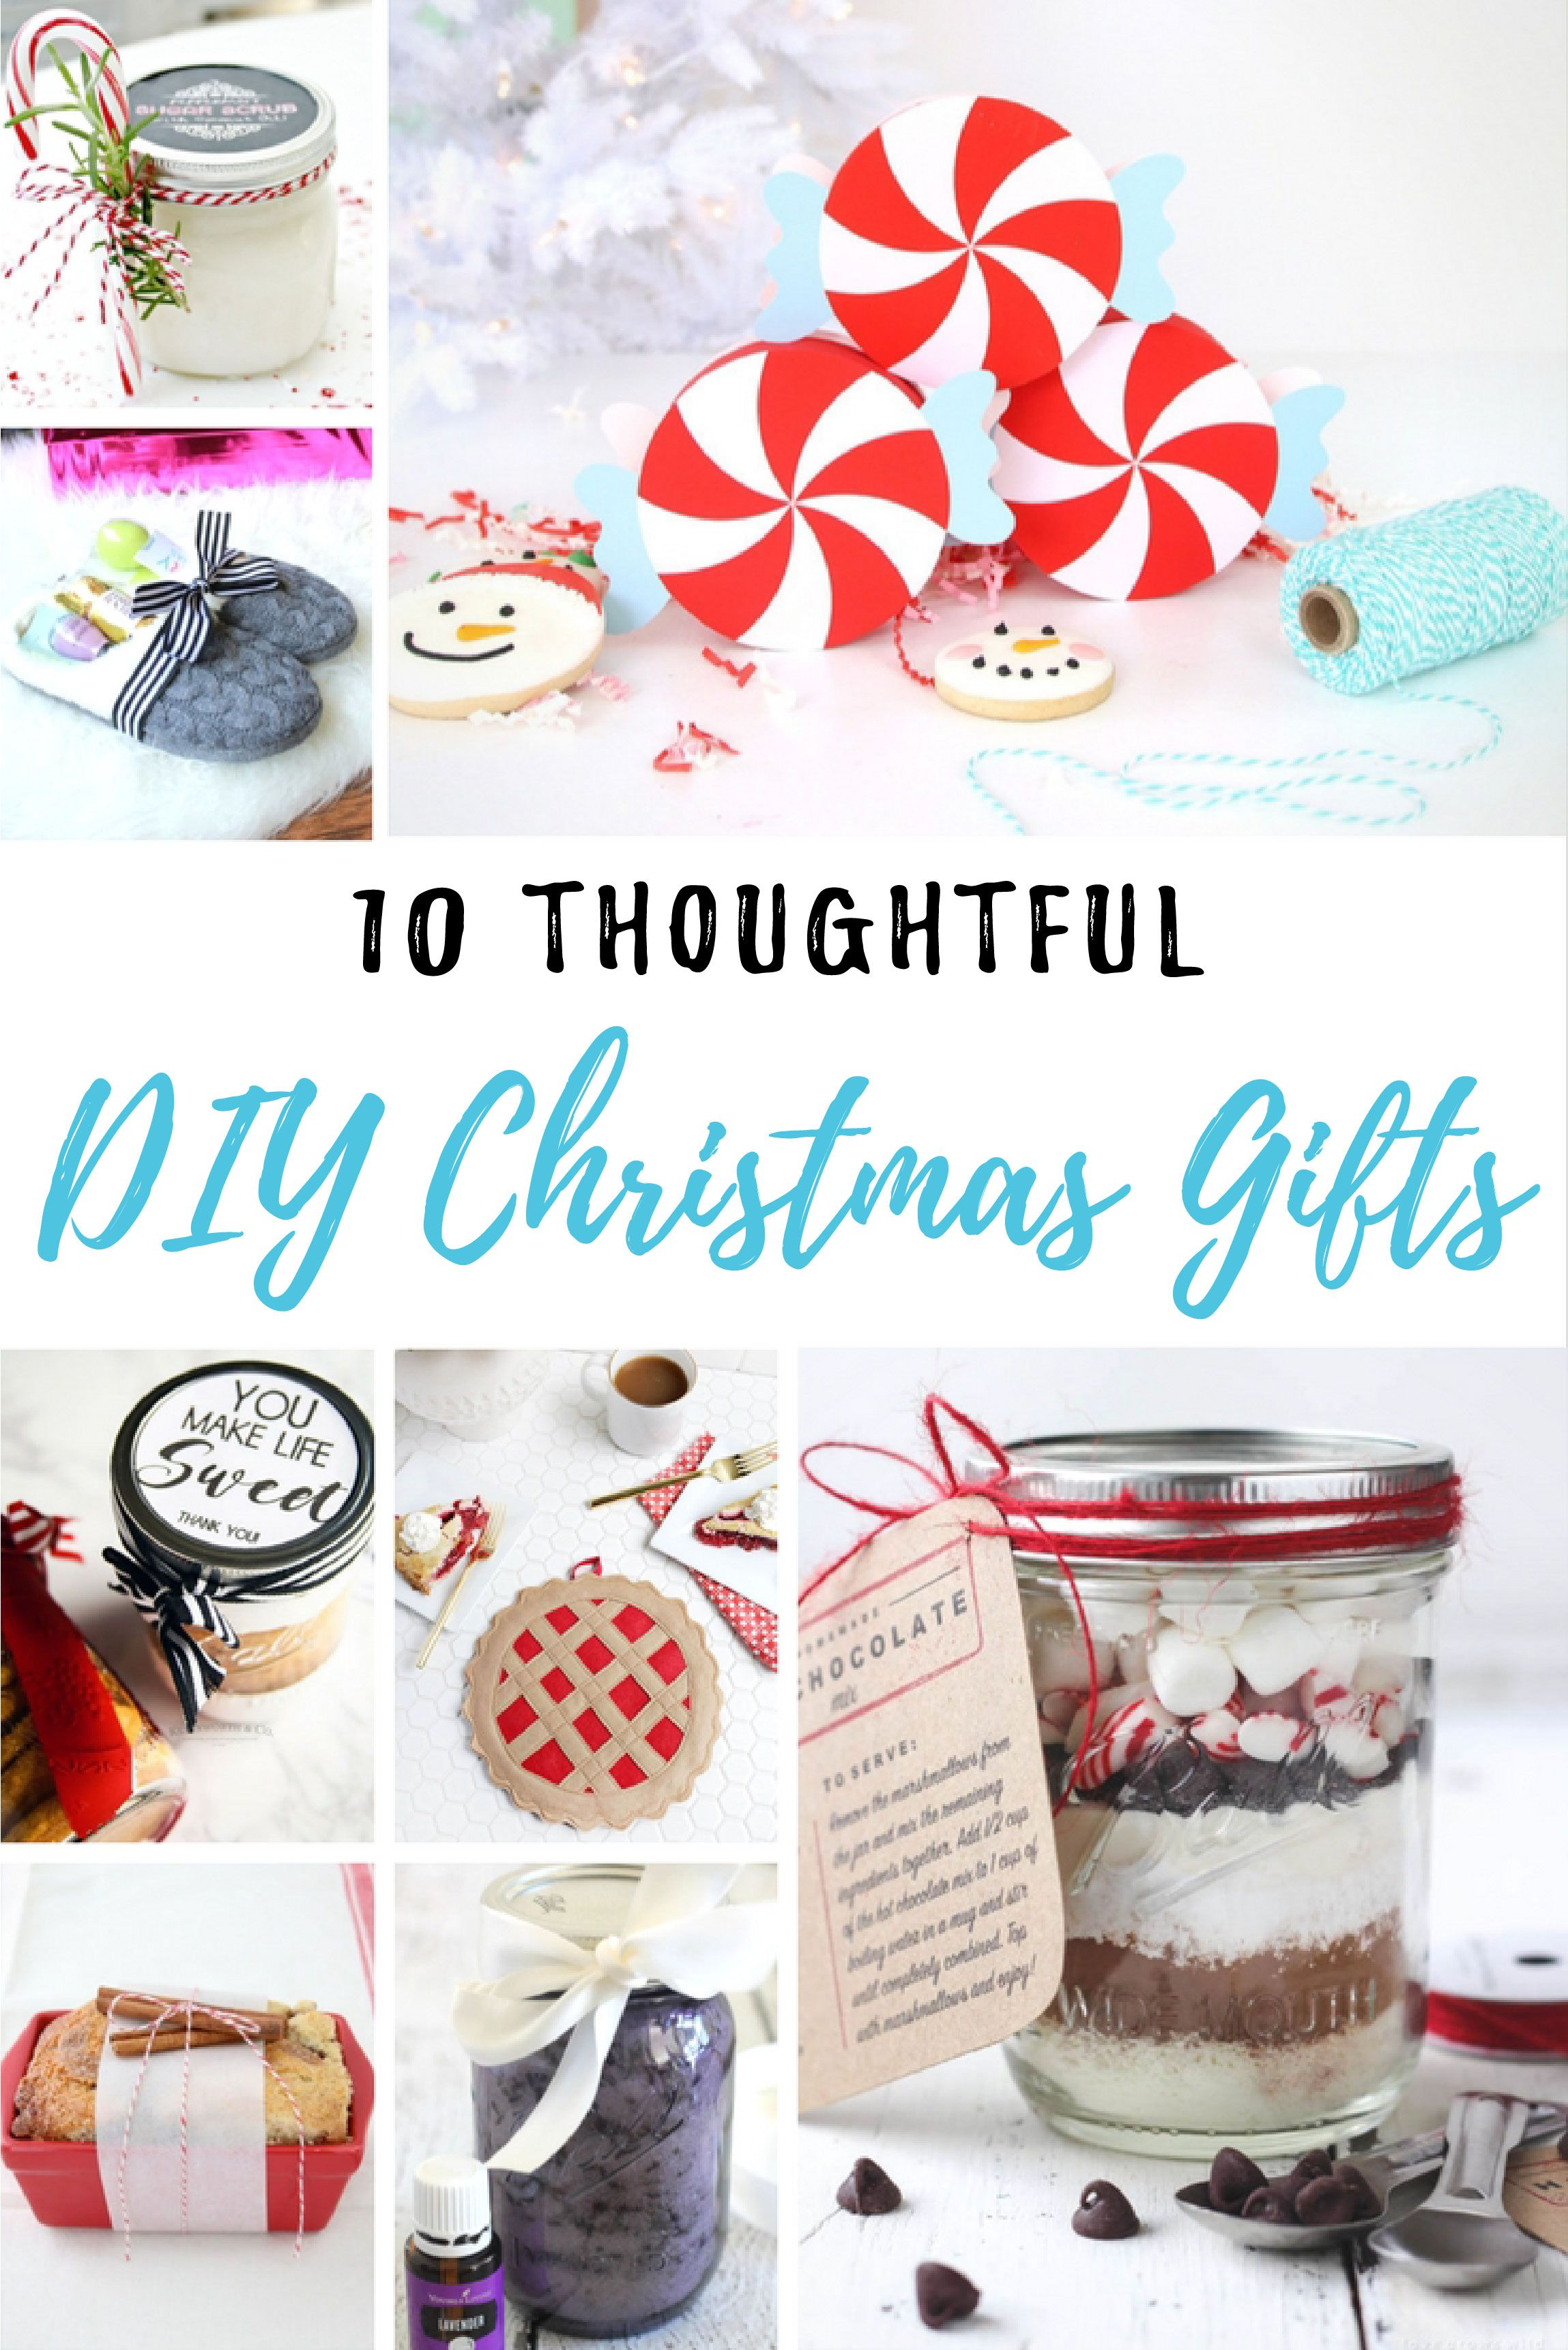 10 Thoughtful DIY Christmas Gifts | Christmas Crafts & Gift Ideas ...